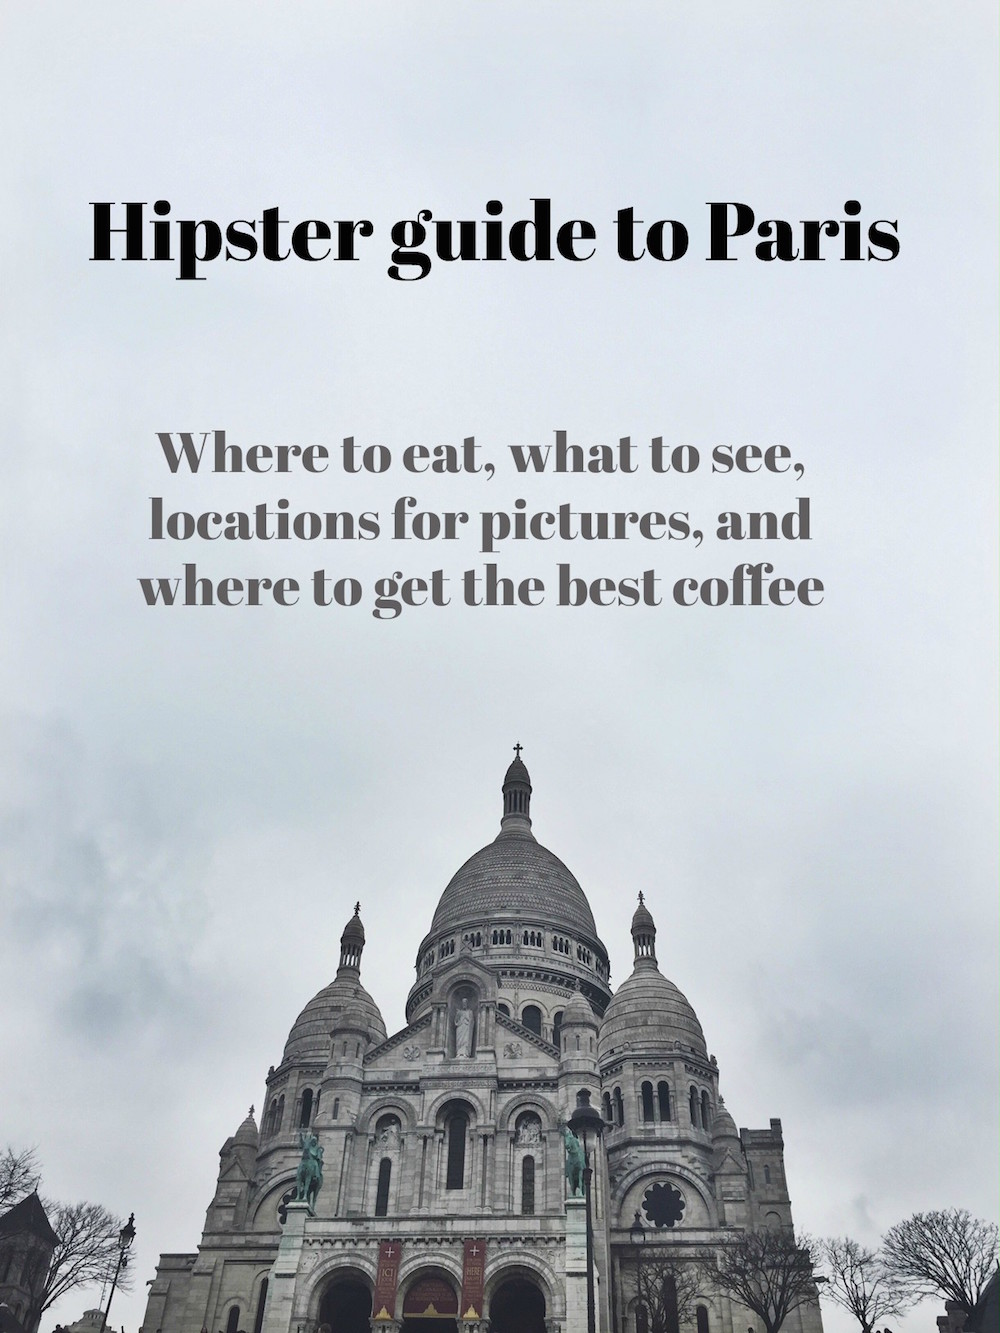 Hipster guide: how to spend three days in Paris